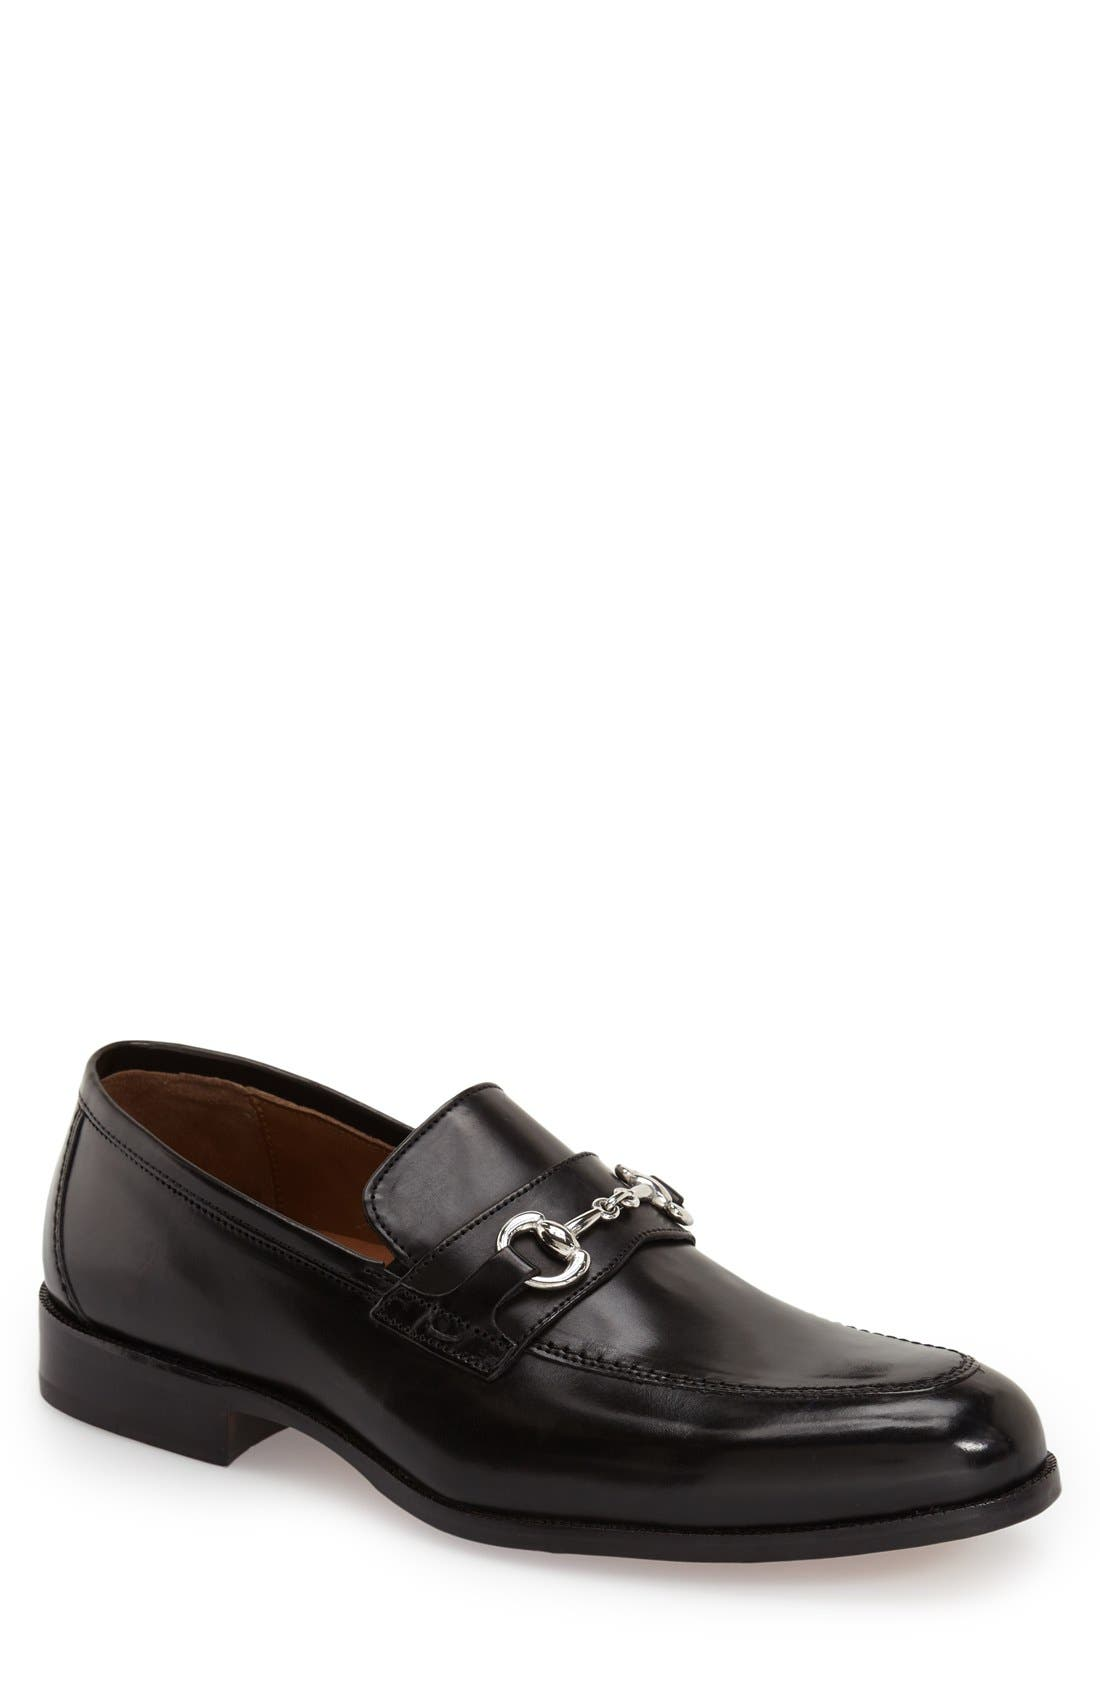 'Stratton' Bit Loafer,                             Main thumbnail 1, color,                             Black